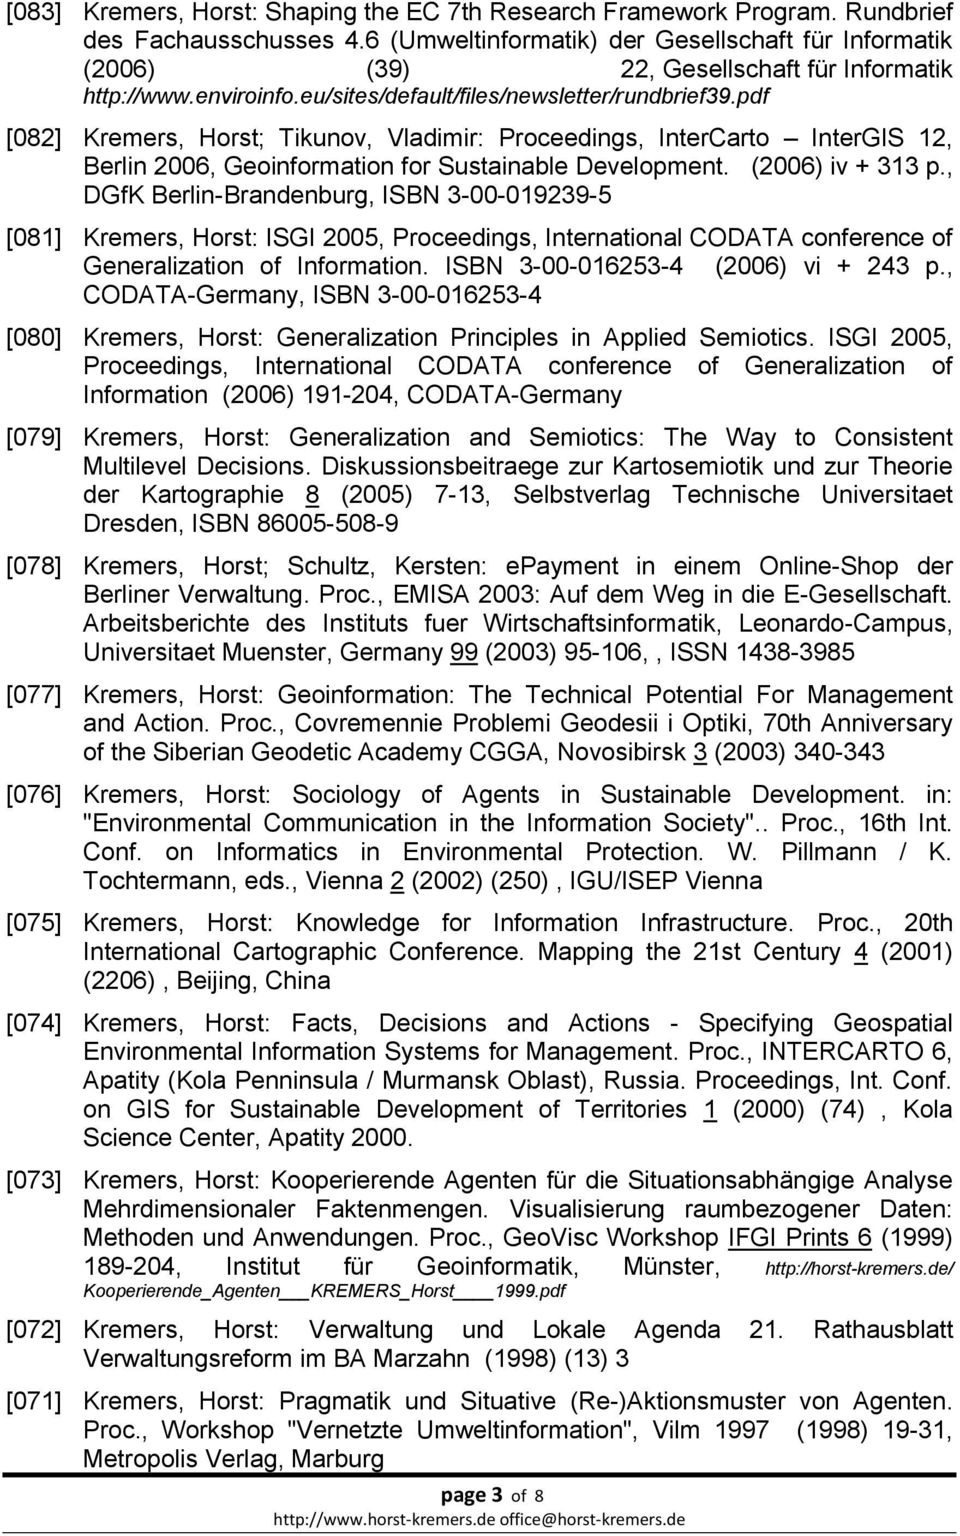 pdf [082] Kremers, Horst; Tikunov, Vladimir: Proceedings, InterCarto InterGIS 12, Berlin 2006, Geoinformation for Sustainable Development. (2006) iv + 313 p.